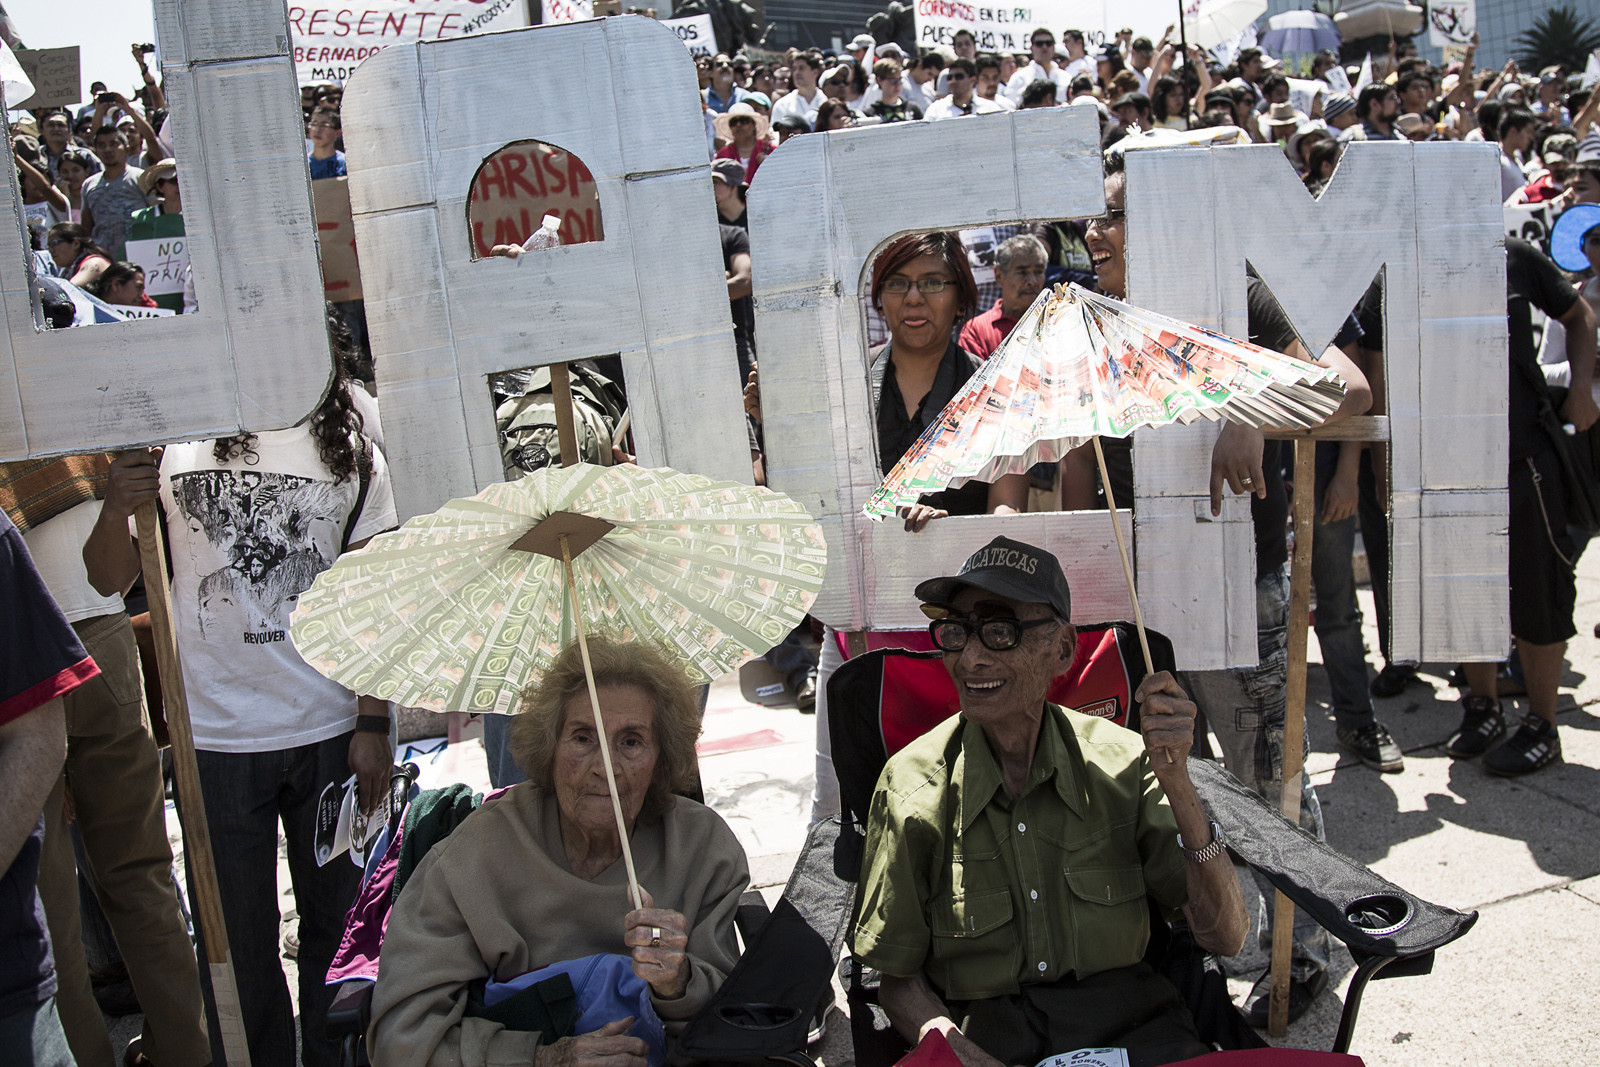 Elderly activists hangout in the hot mid-day sun during  the #YoSoy132 march. Older marchers like this remember demonstrating against the PRI in past  decades. They often paid for it in blood.